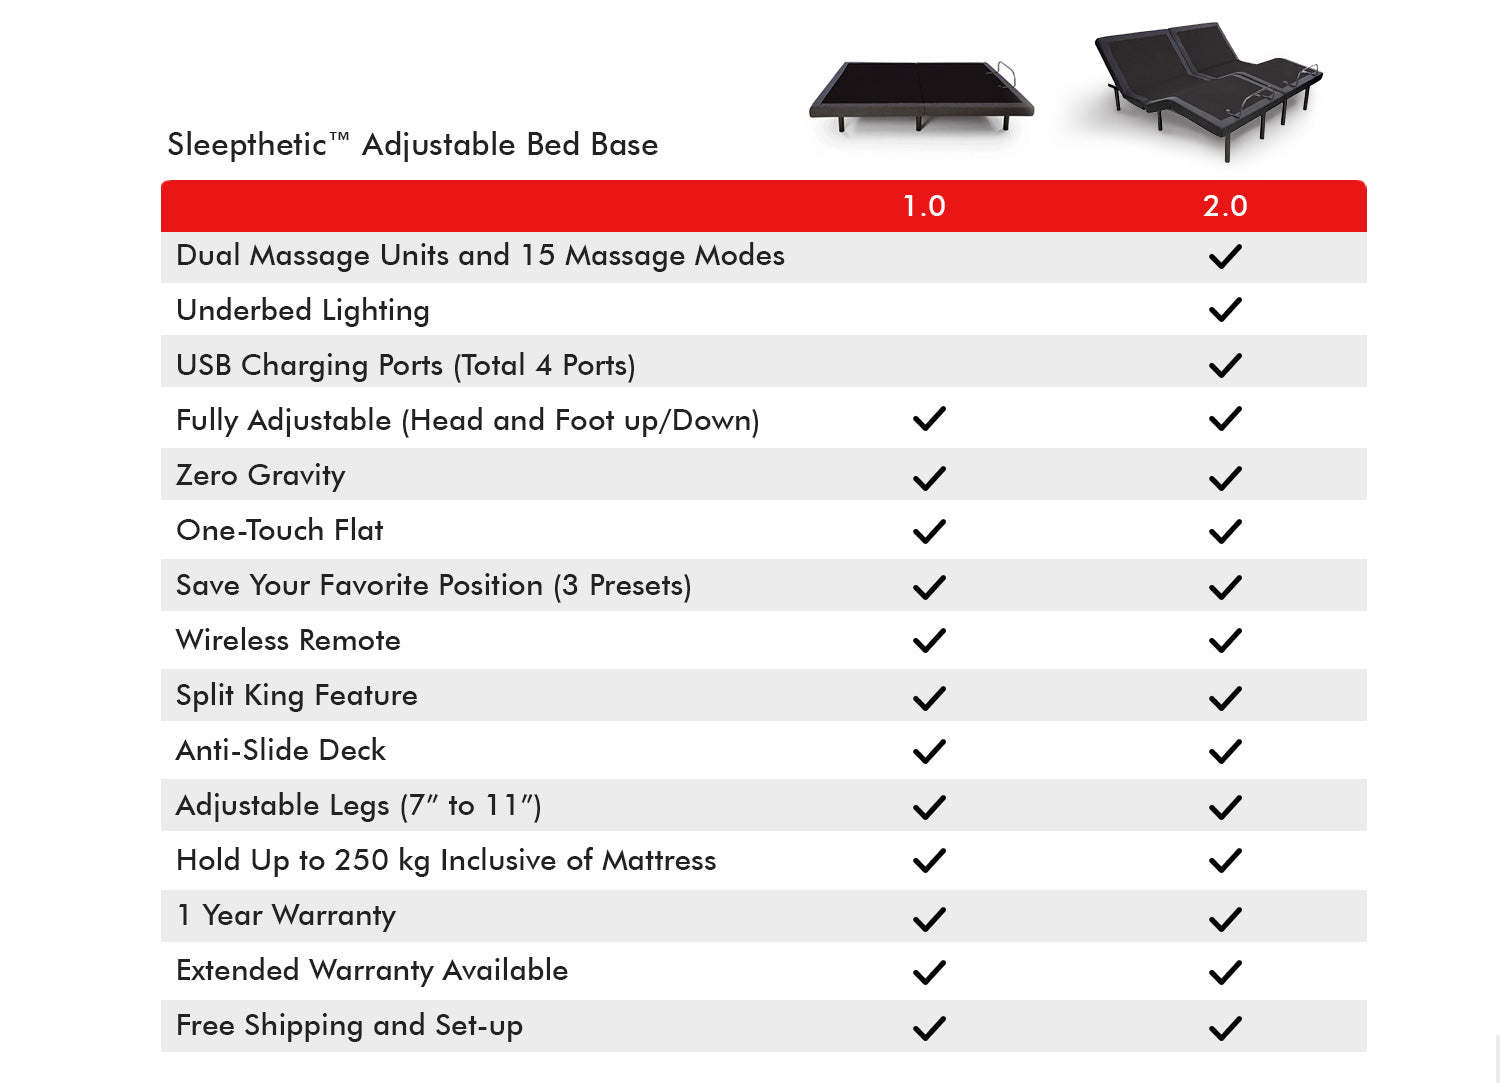 sleepthetic adjustable bed base comparison bedding affairs singapore